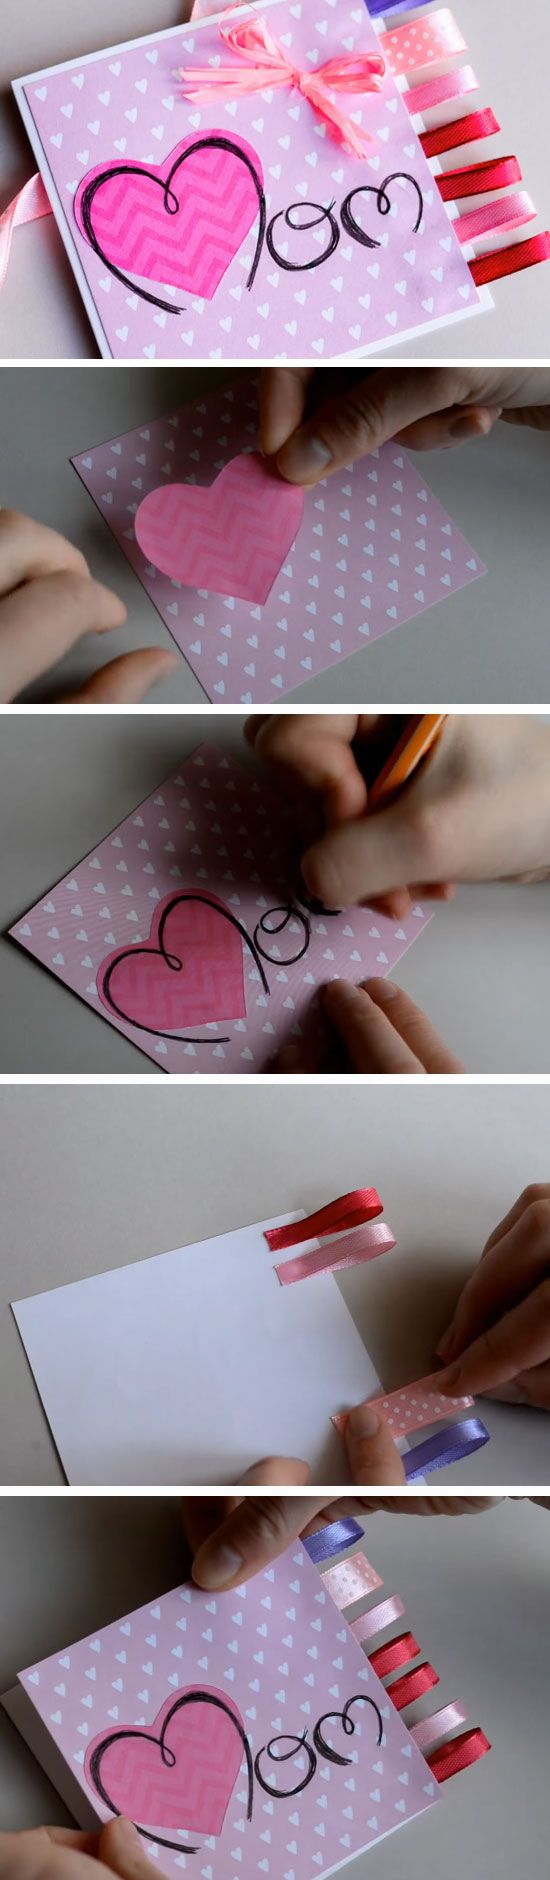 Pretty Ribbons | DIY Mothers Day Card Ideas for Children | Easy Birthday Cards to Make for Mom